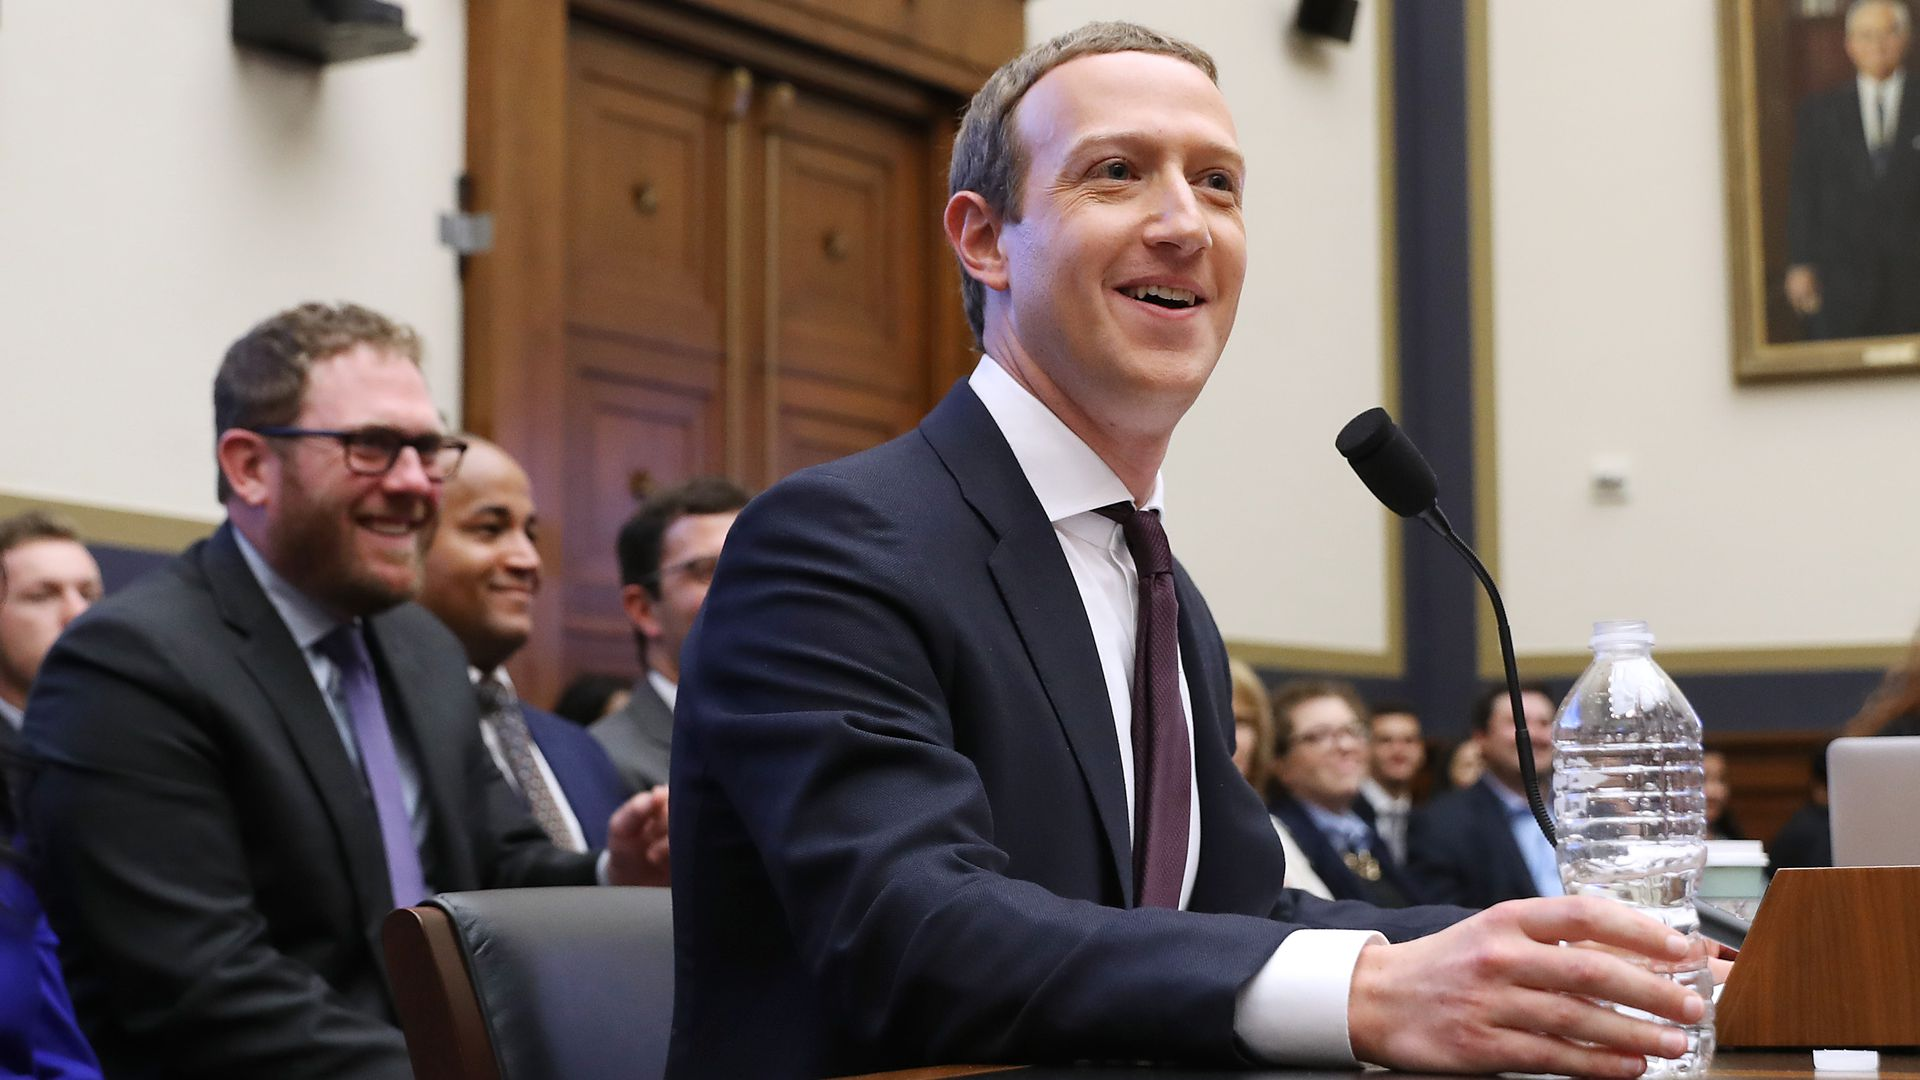 Facebook co-founder and CEO Mark Zuckerberg testifies before the House Financial Services Committee